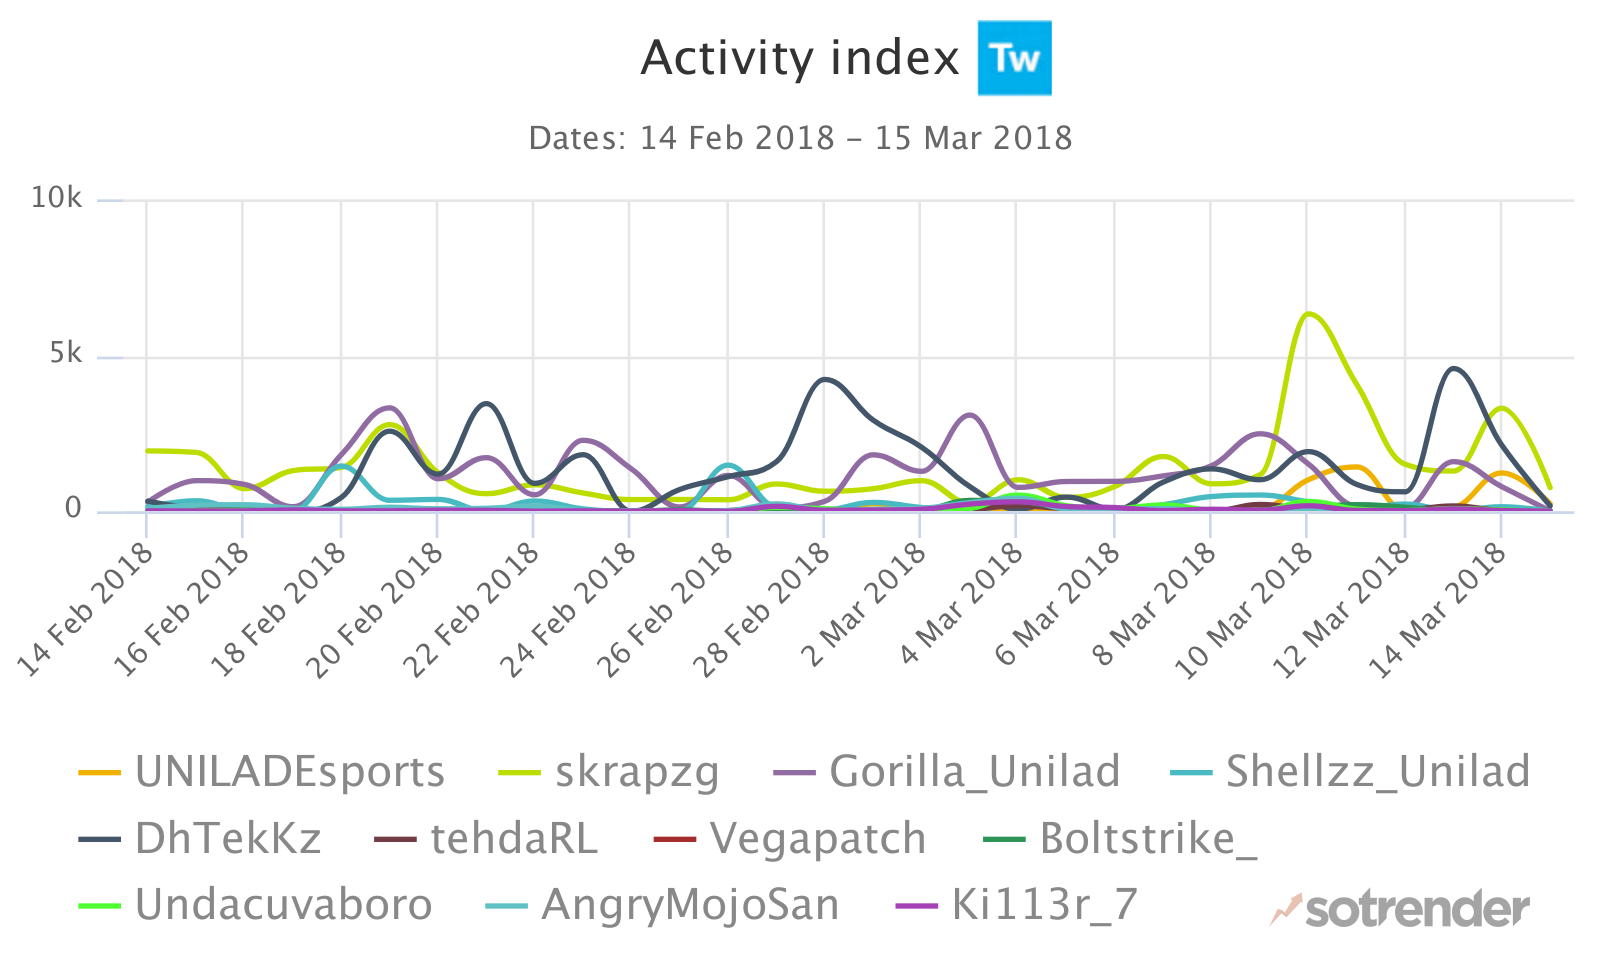 esports uk activity index twitter